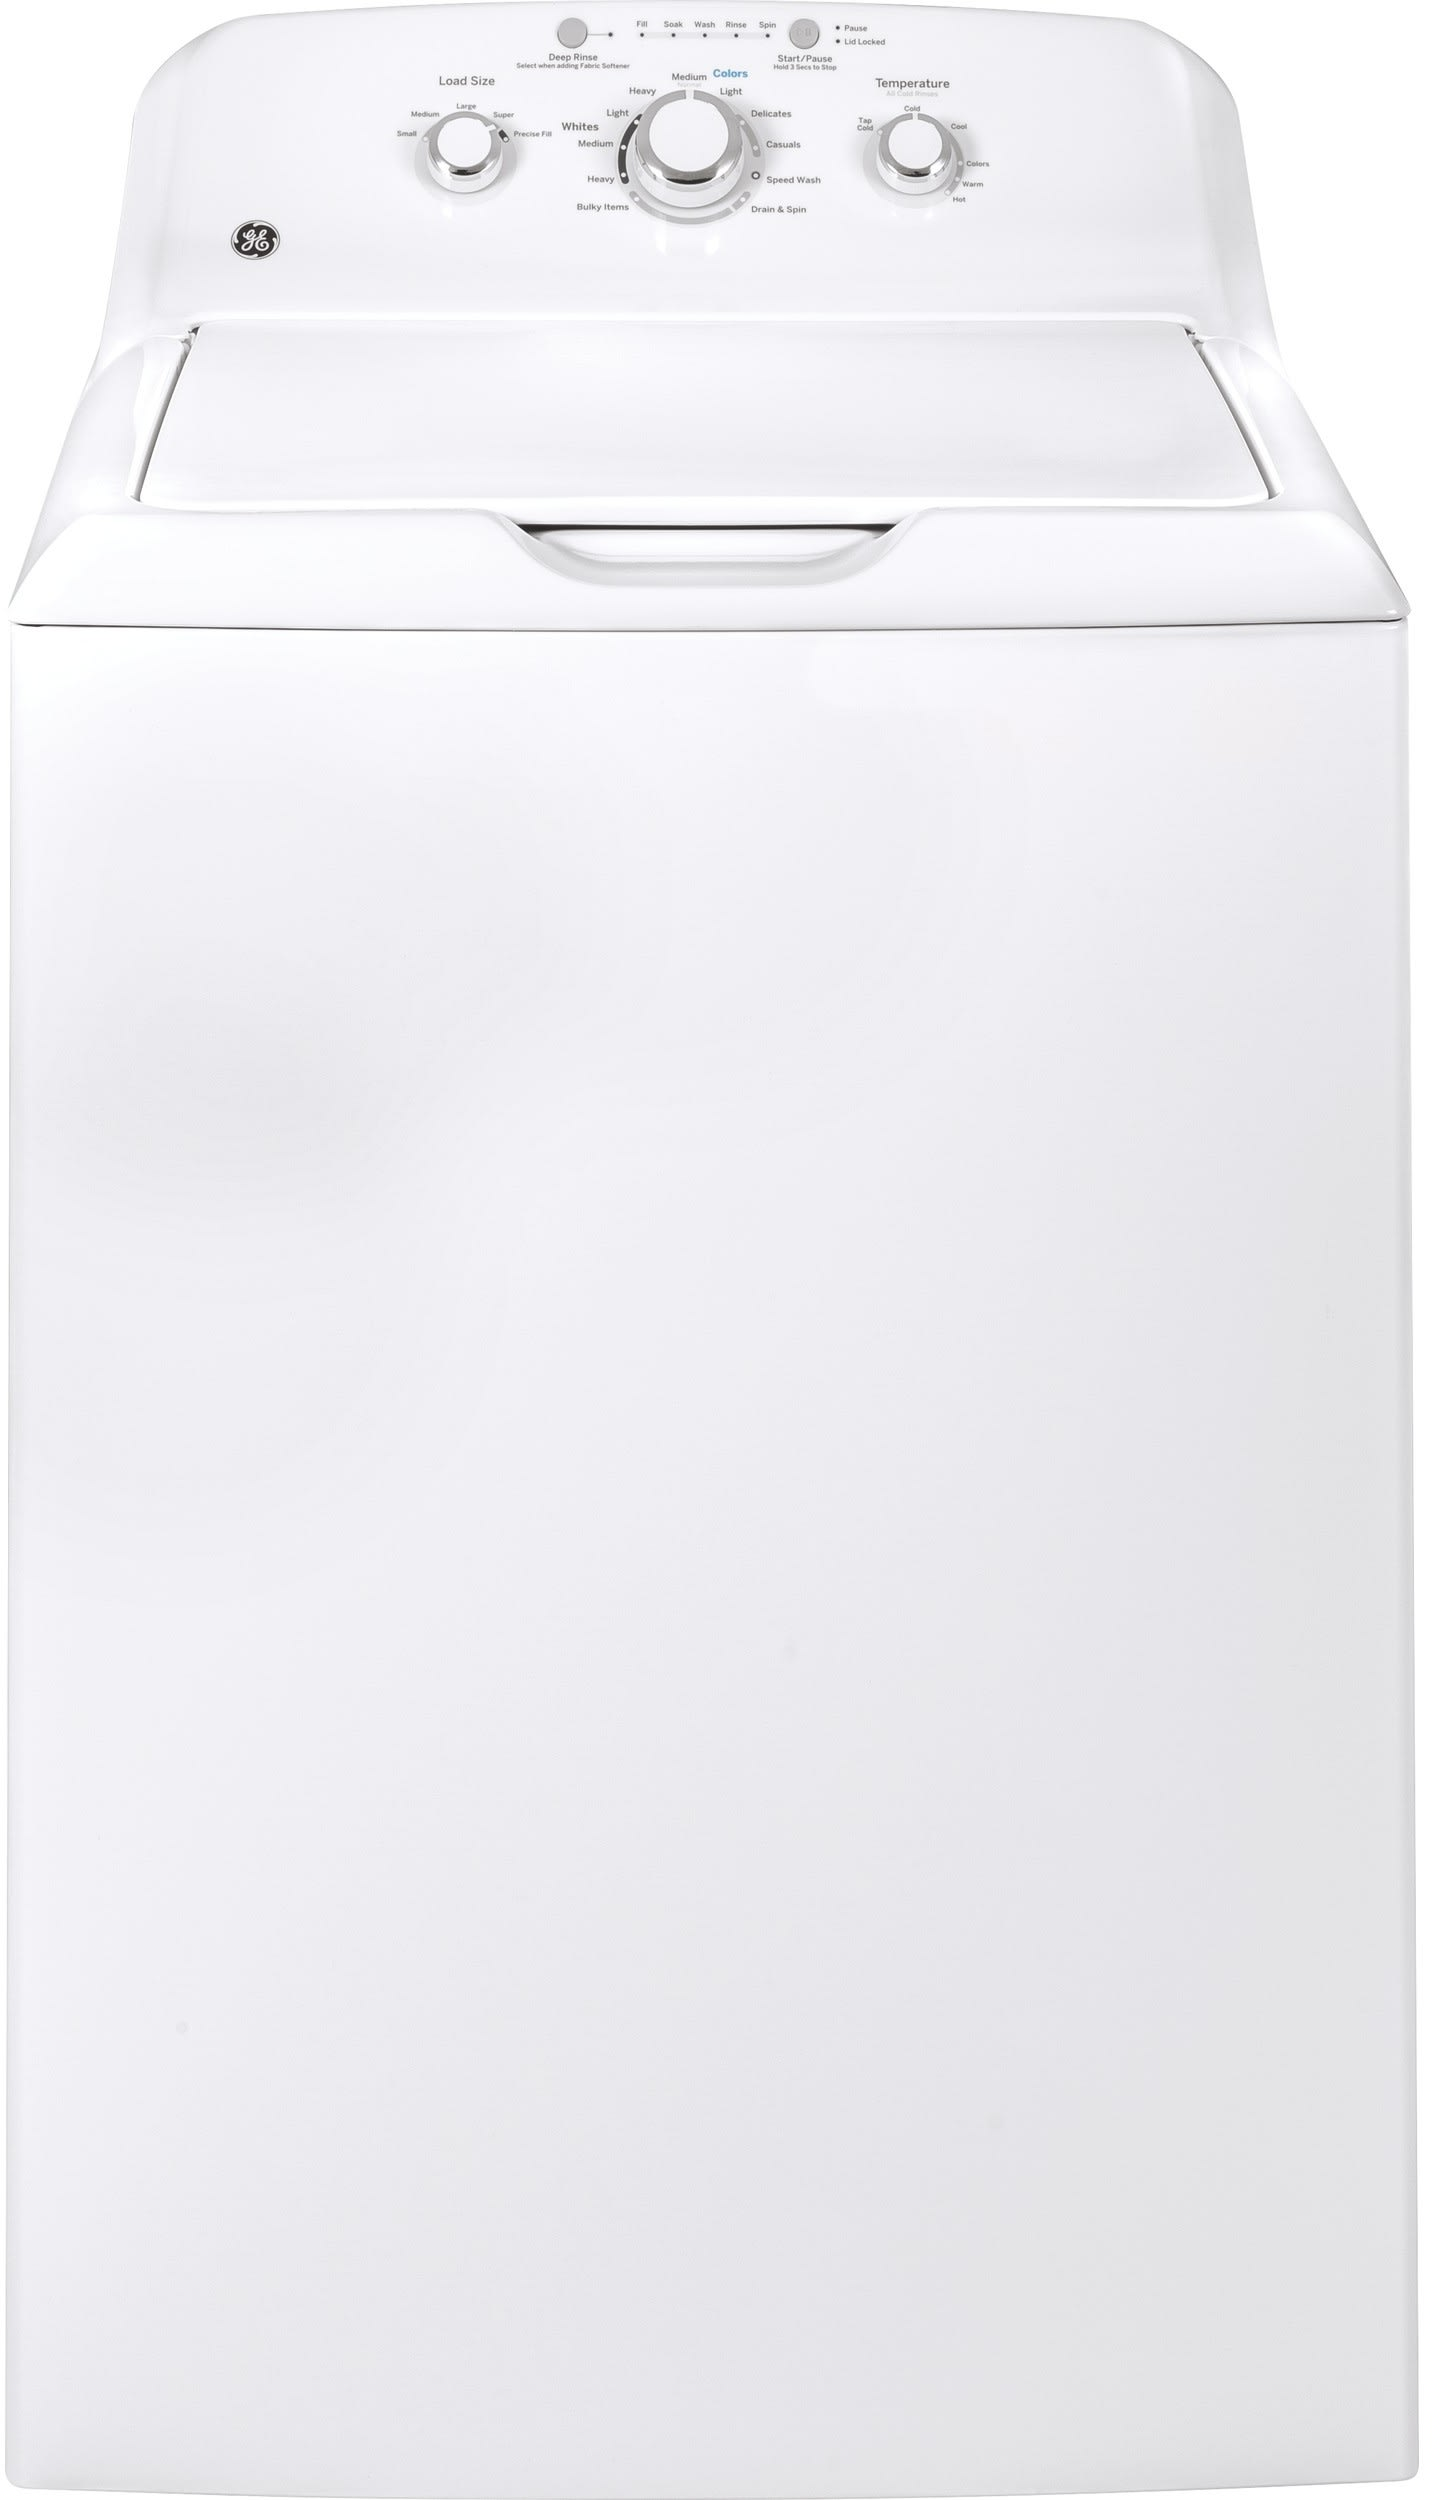 GE GTW335ASNWW 27 Inch 4 2 cu  ft  Top Load Washer with 11